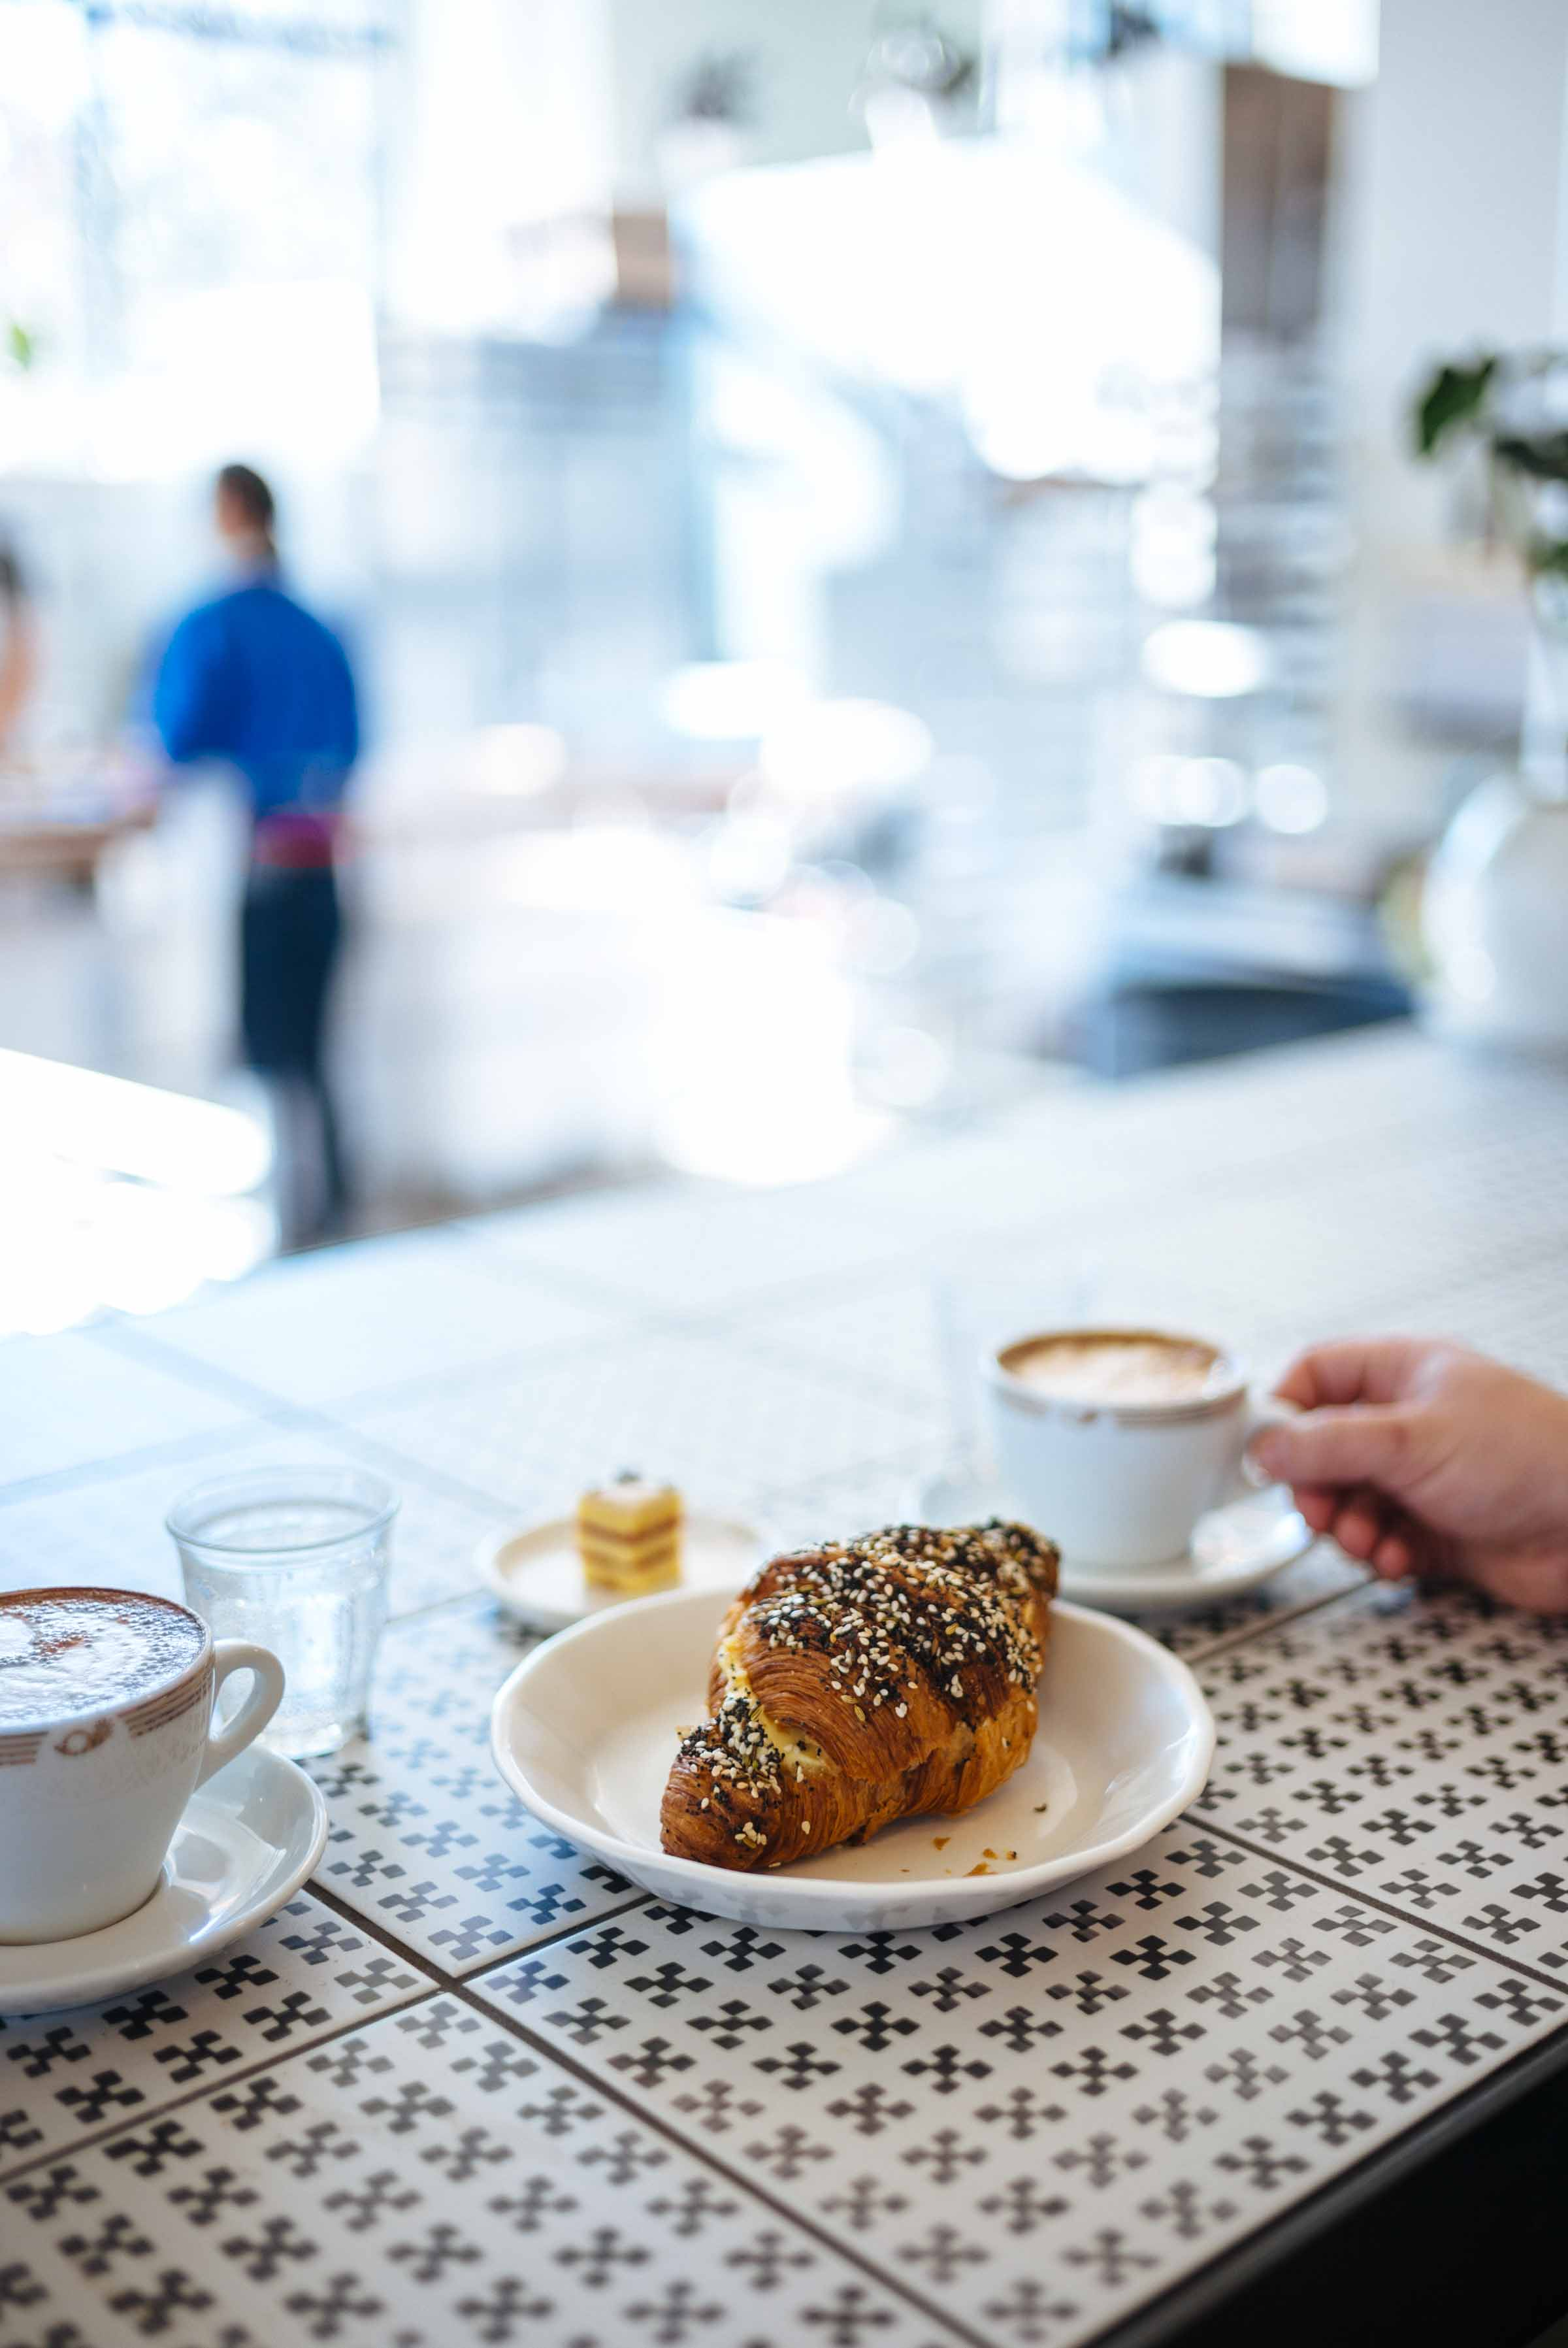 Head to Ibis bakery Kansas City for refined pastries and coffee